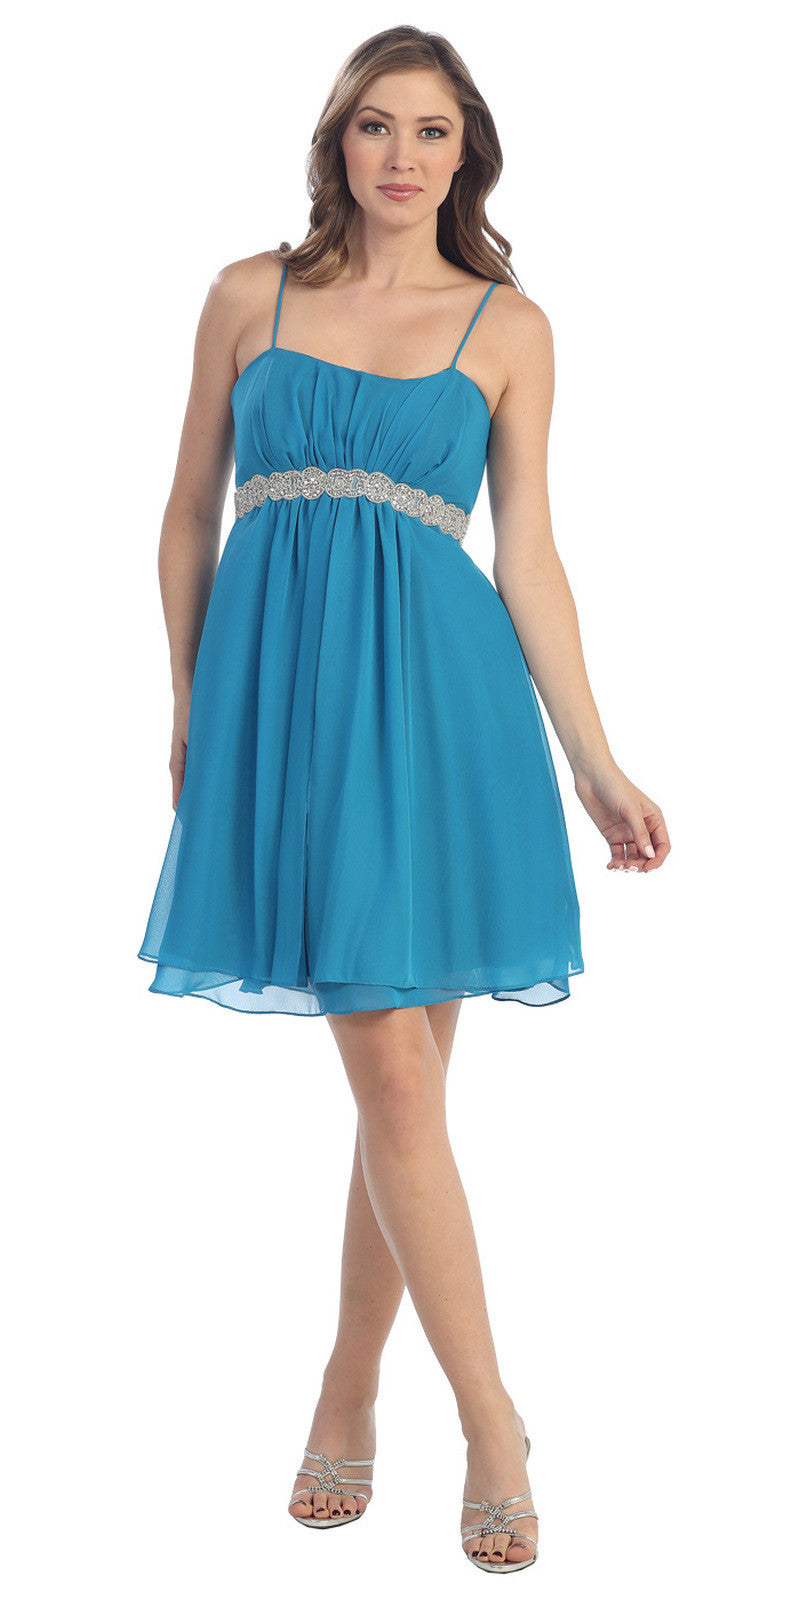 Short Knee Length Teal Chiffon Dress Empire Waist Spaghetti Straps